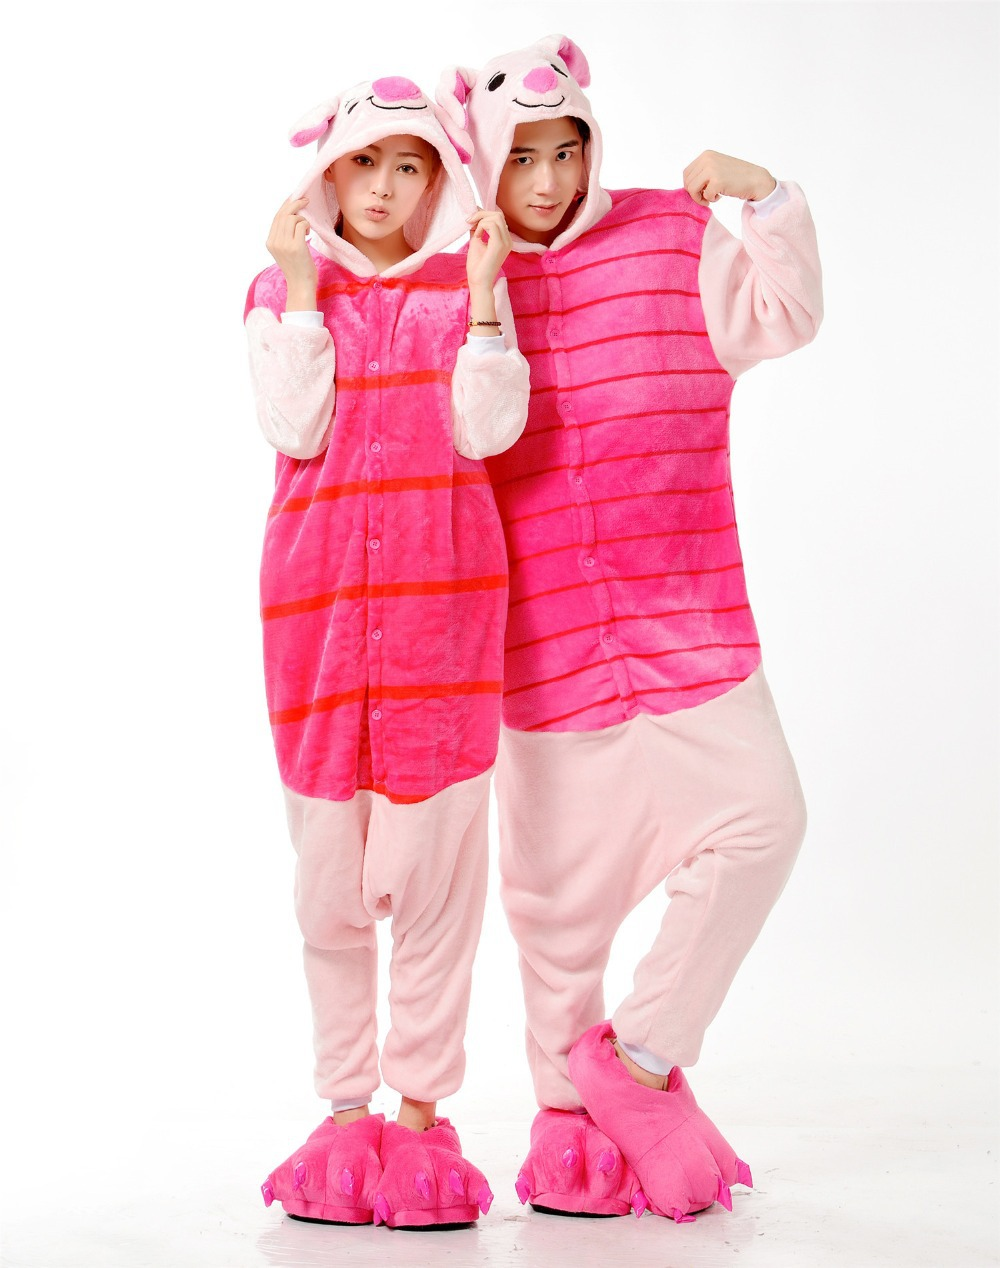 fcd9b82f5d78 Get Quotations · New Adult Onesie Unisex Pajamas Cosplay Japan Costumes  Cute Animal Cartoon Piglet Onesies Pyjamas Sleepwears Pink